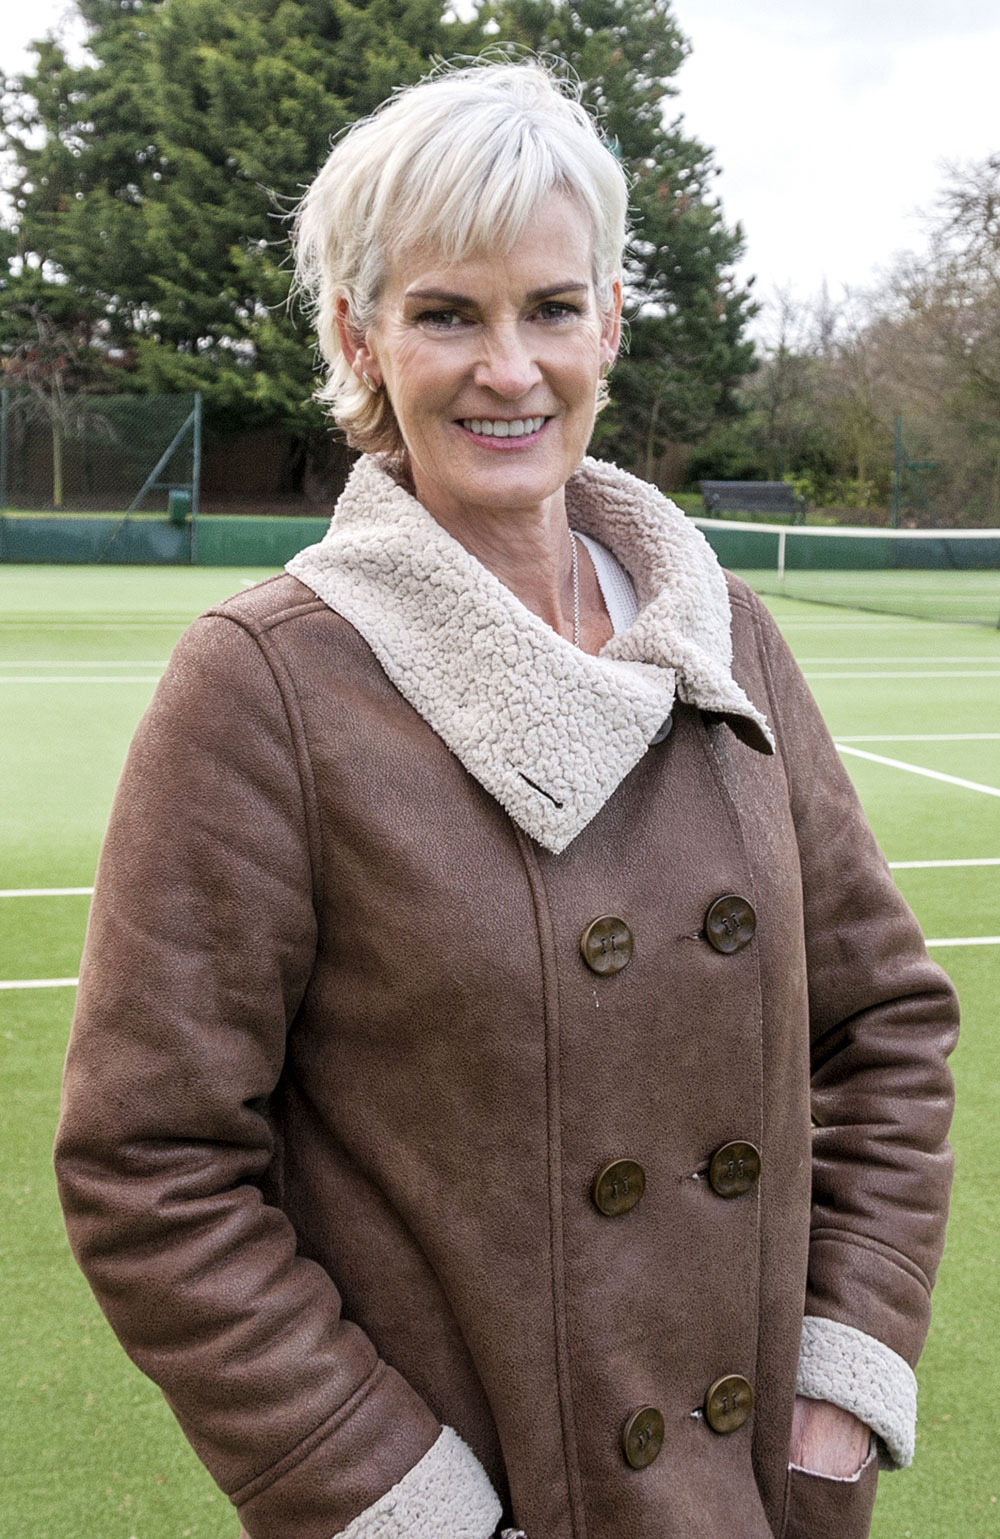 Judy-Murray-MAIN-c-Marc-Atk.jpg